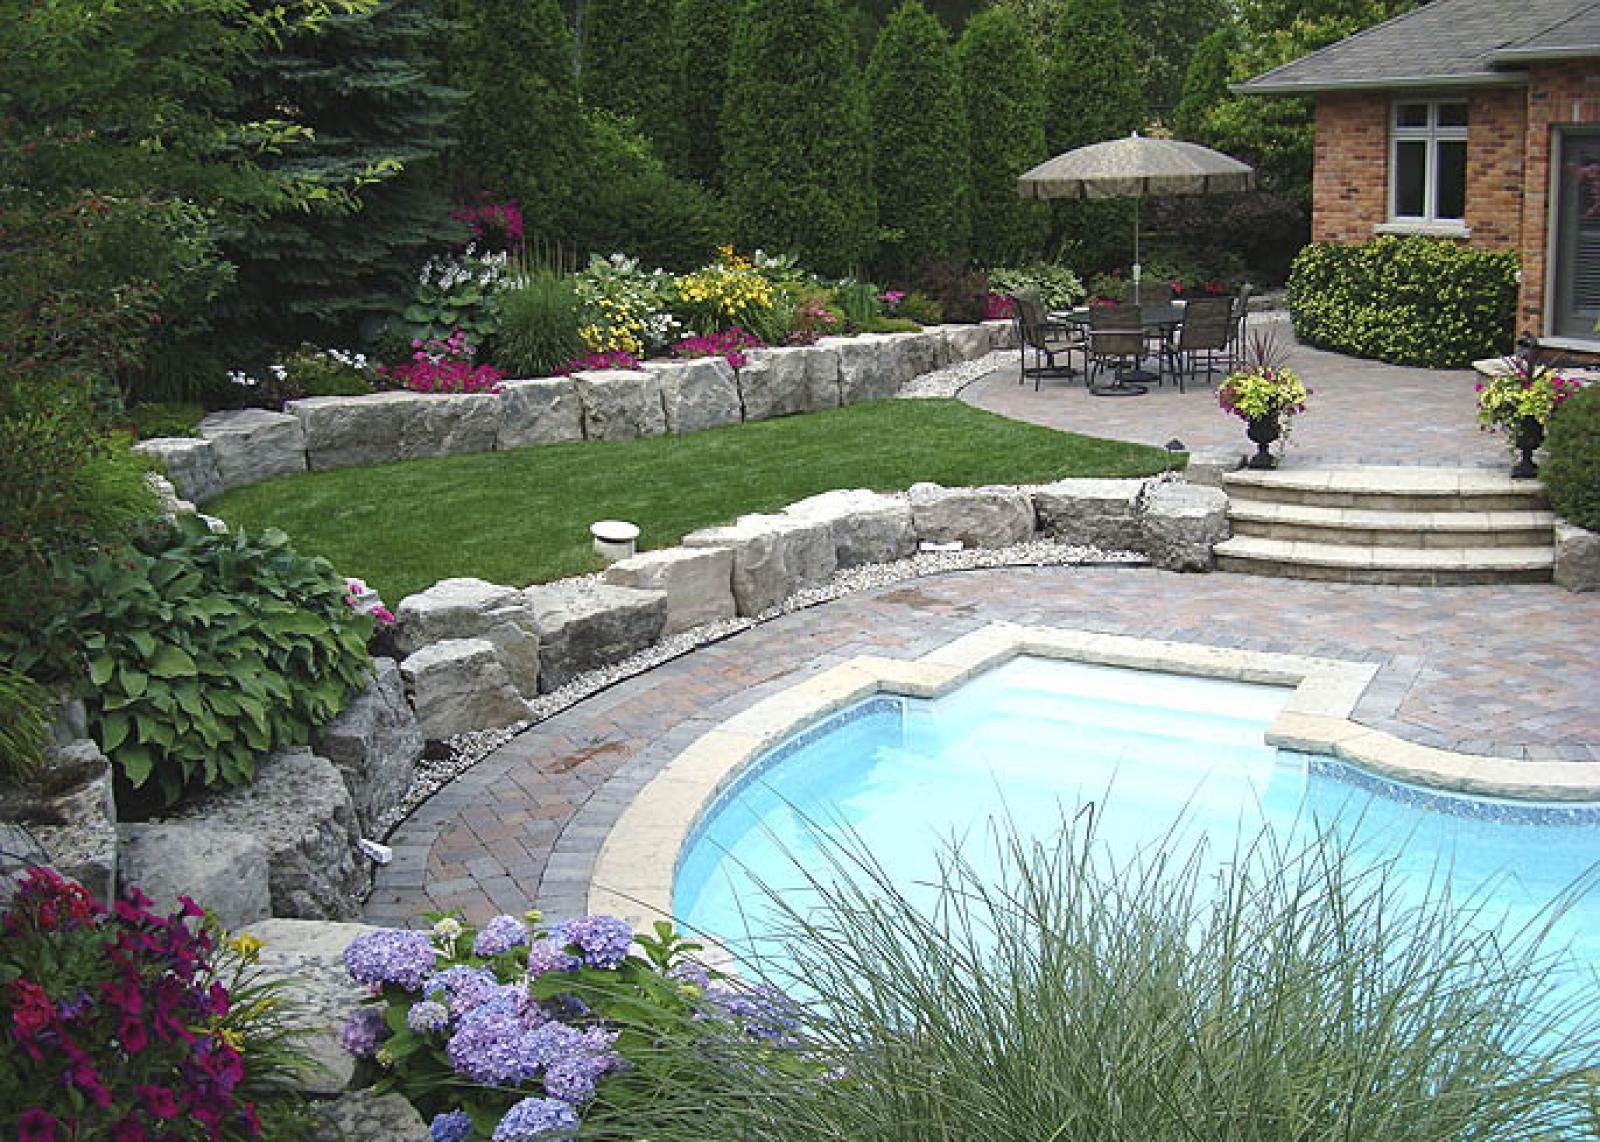 Why use a Landscape Ontario member company?